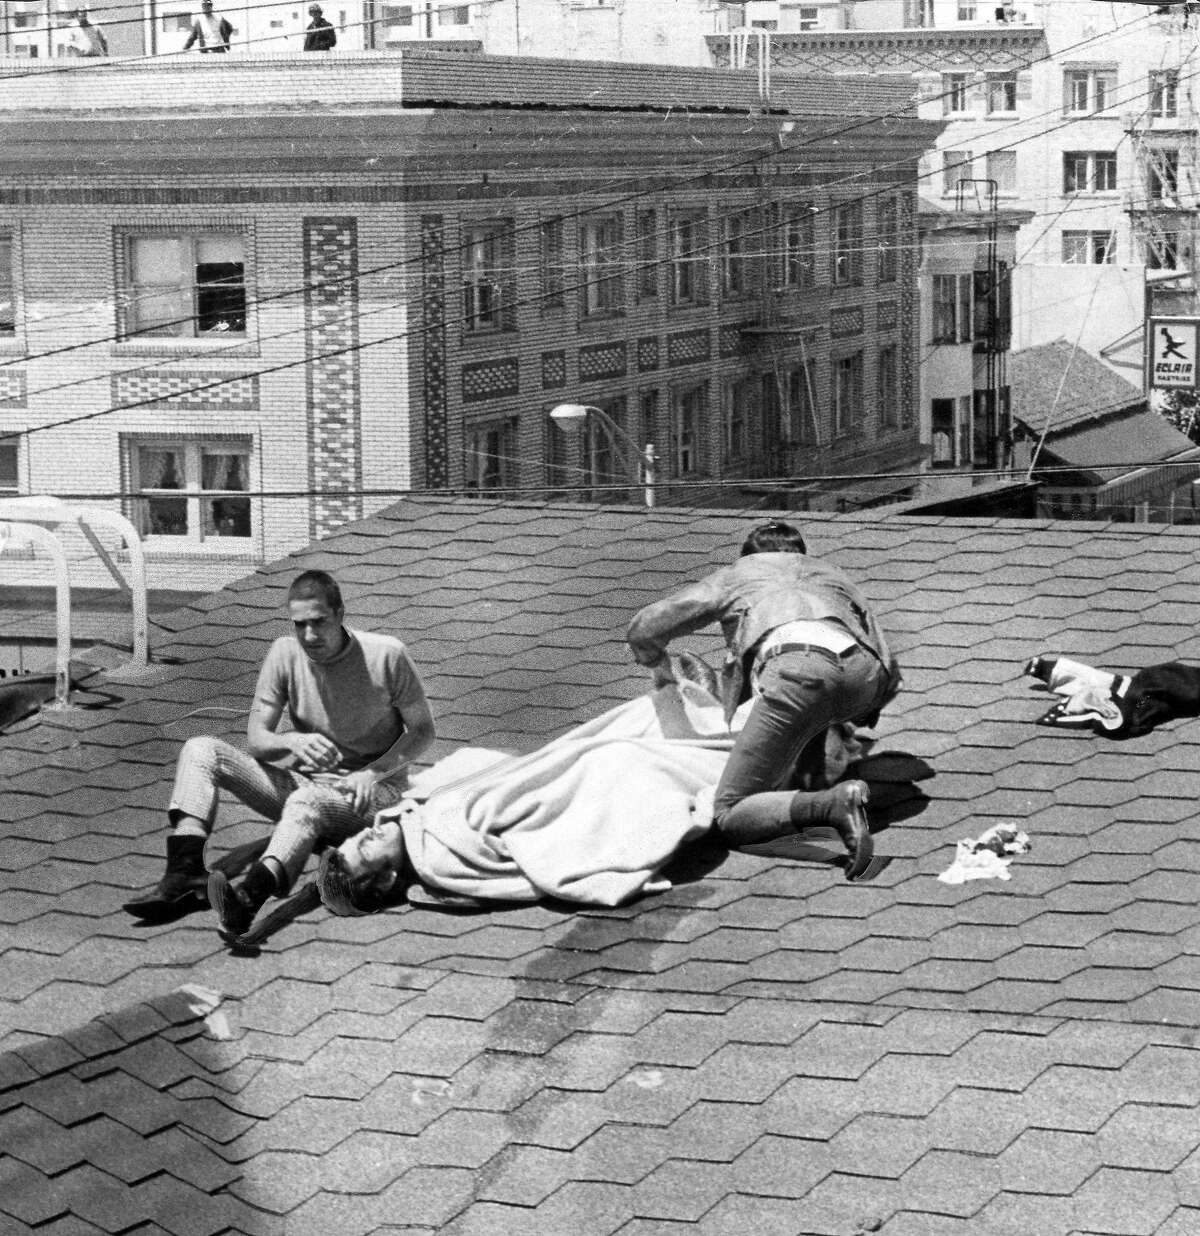 A spectator on the rooftop watching People's Park demonstrators is shot with birdshot in Berkeley May 15, 1969 Photo ran 05/16/1969, p. 6